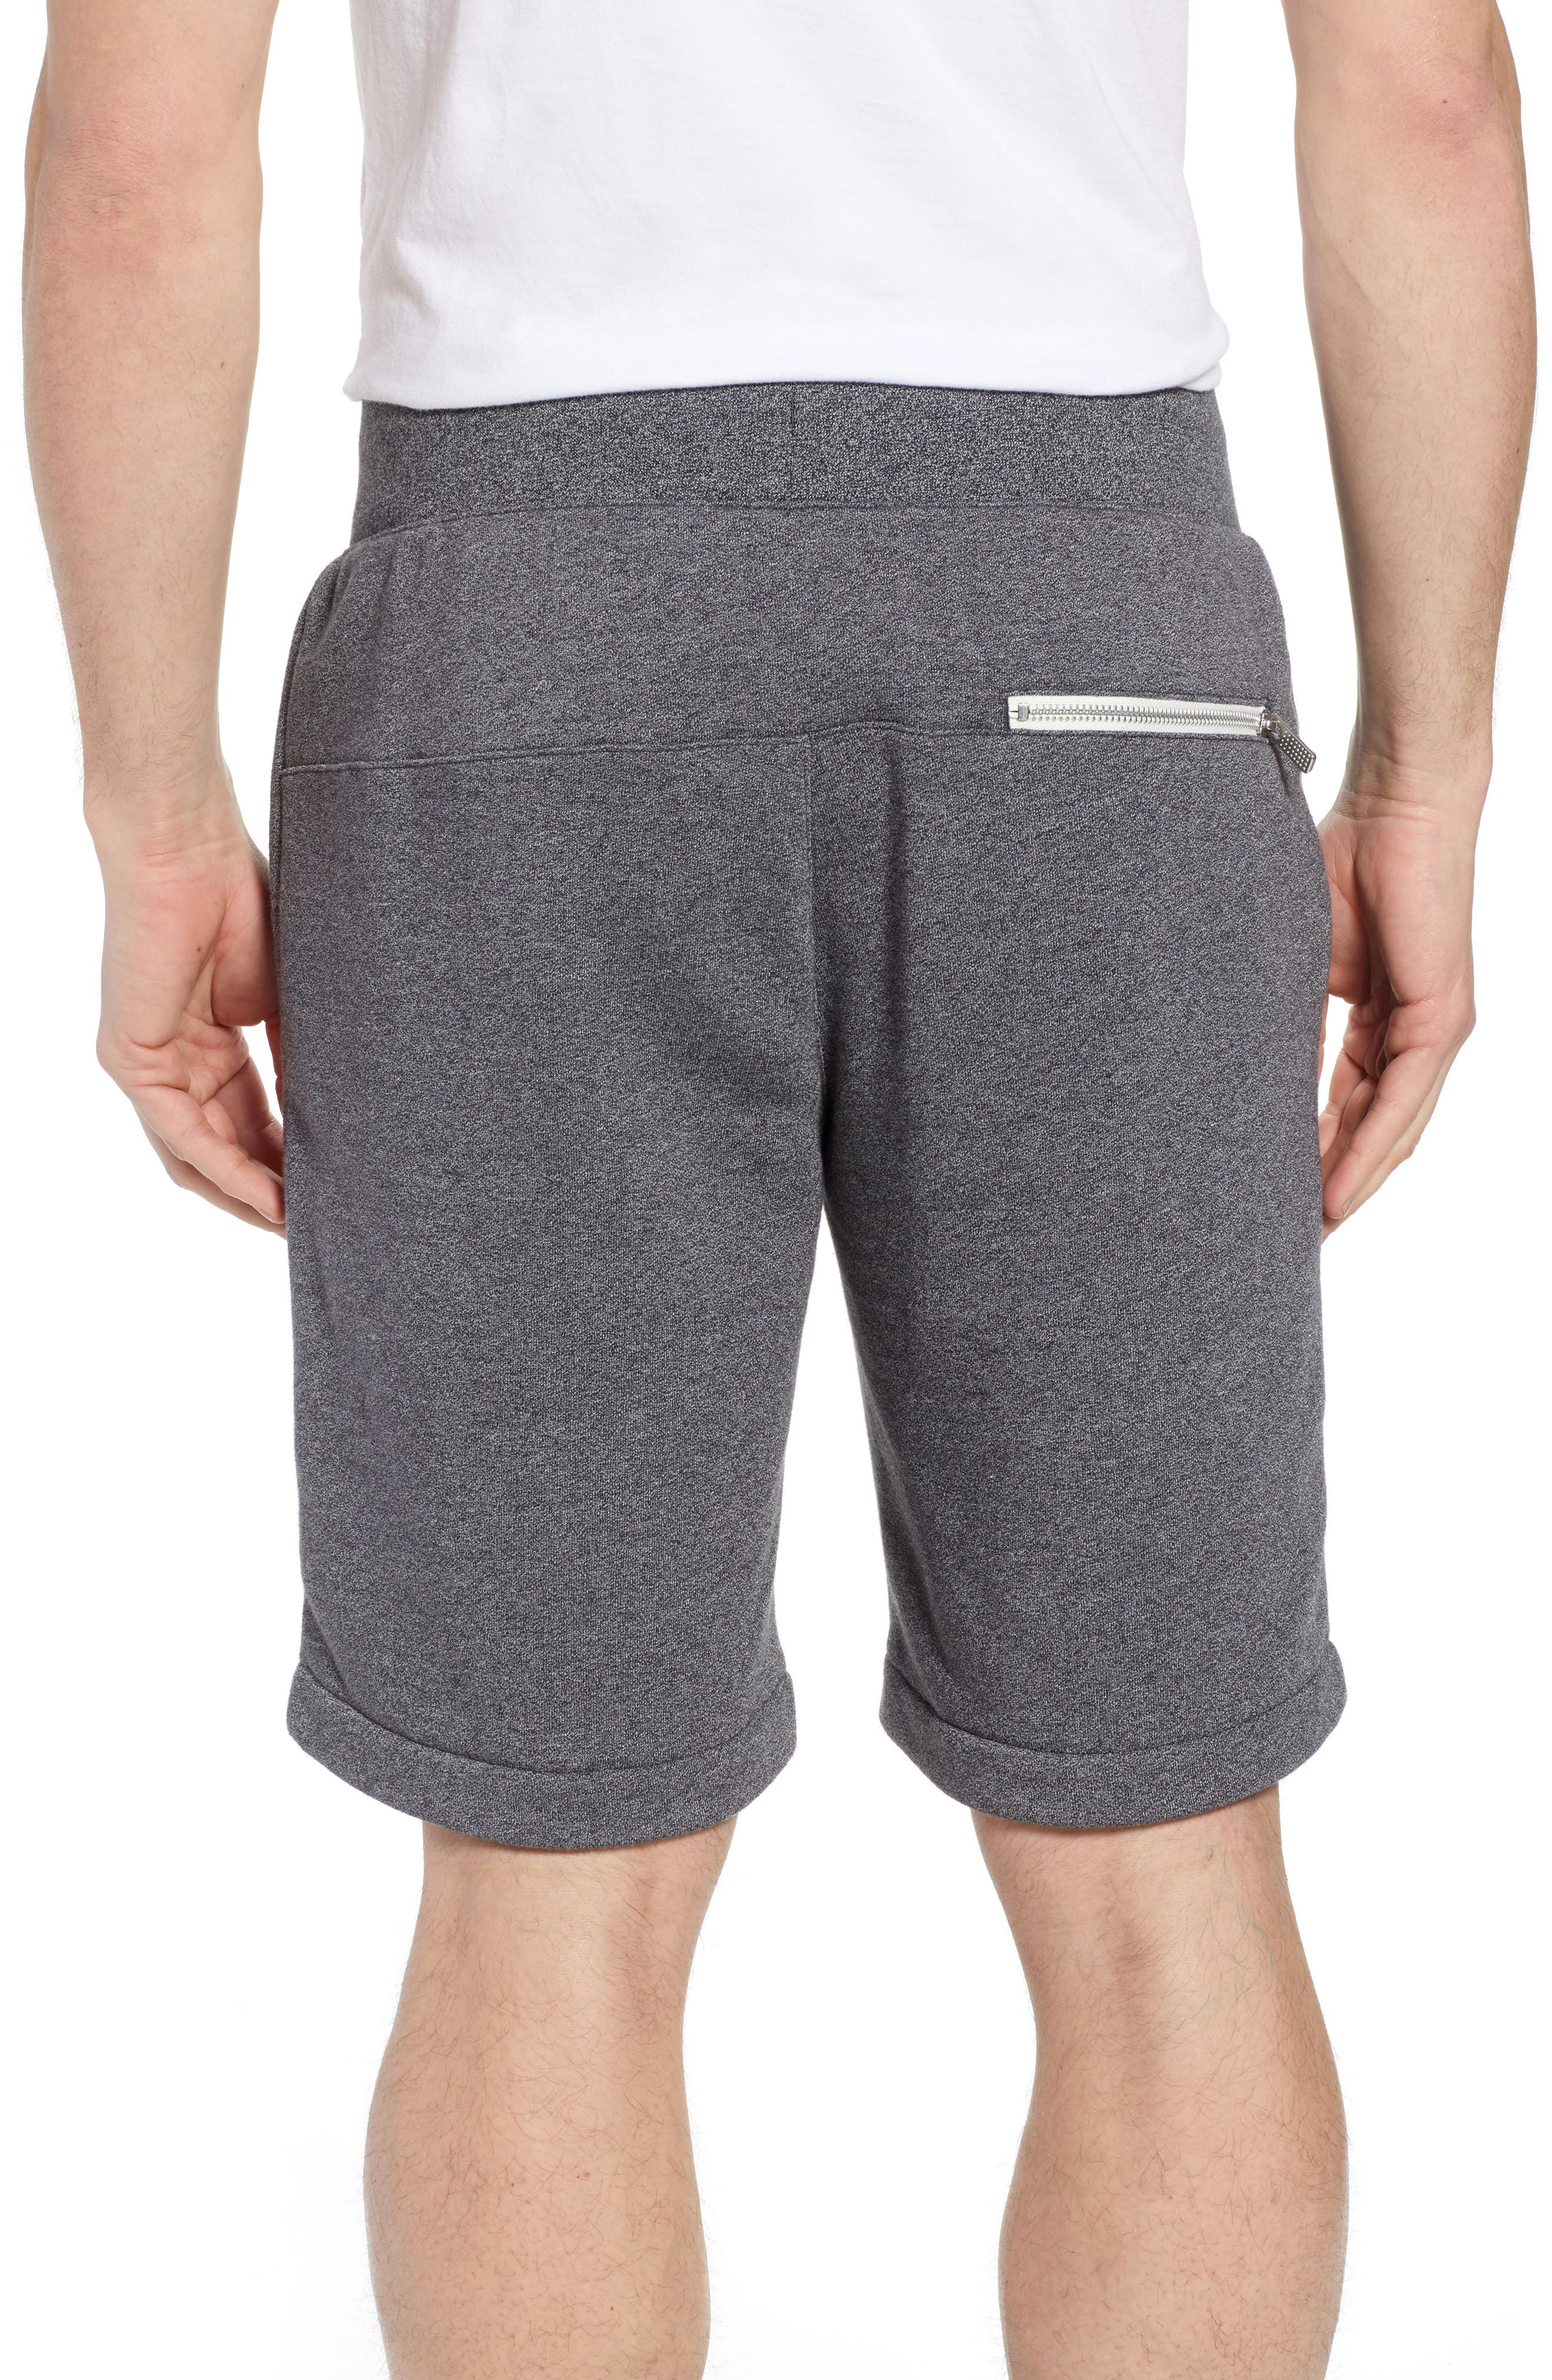 Heritage Knit Shorts,                             Alternate thumbnail 2, color,                             BLACK/ HEATHER/ SAIL